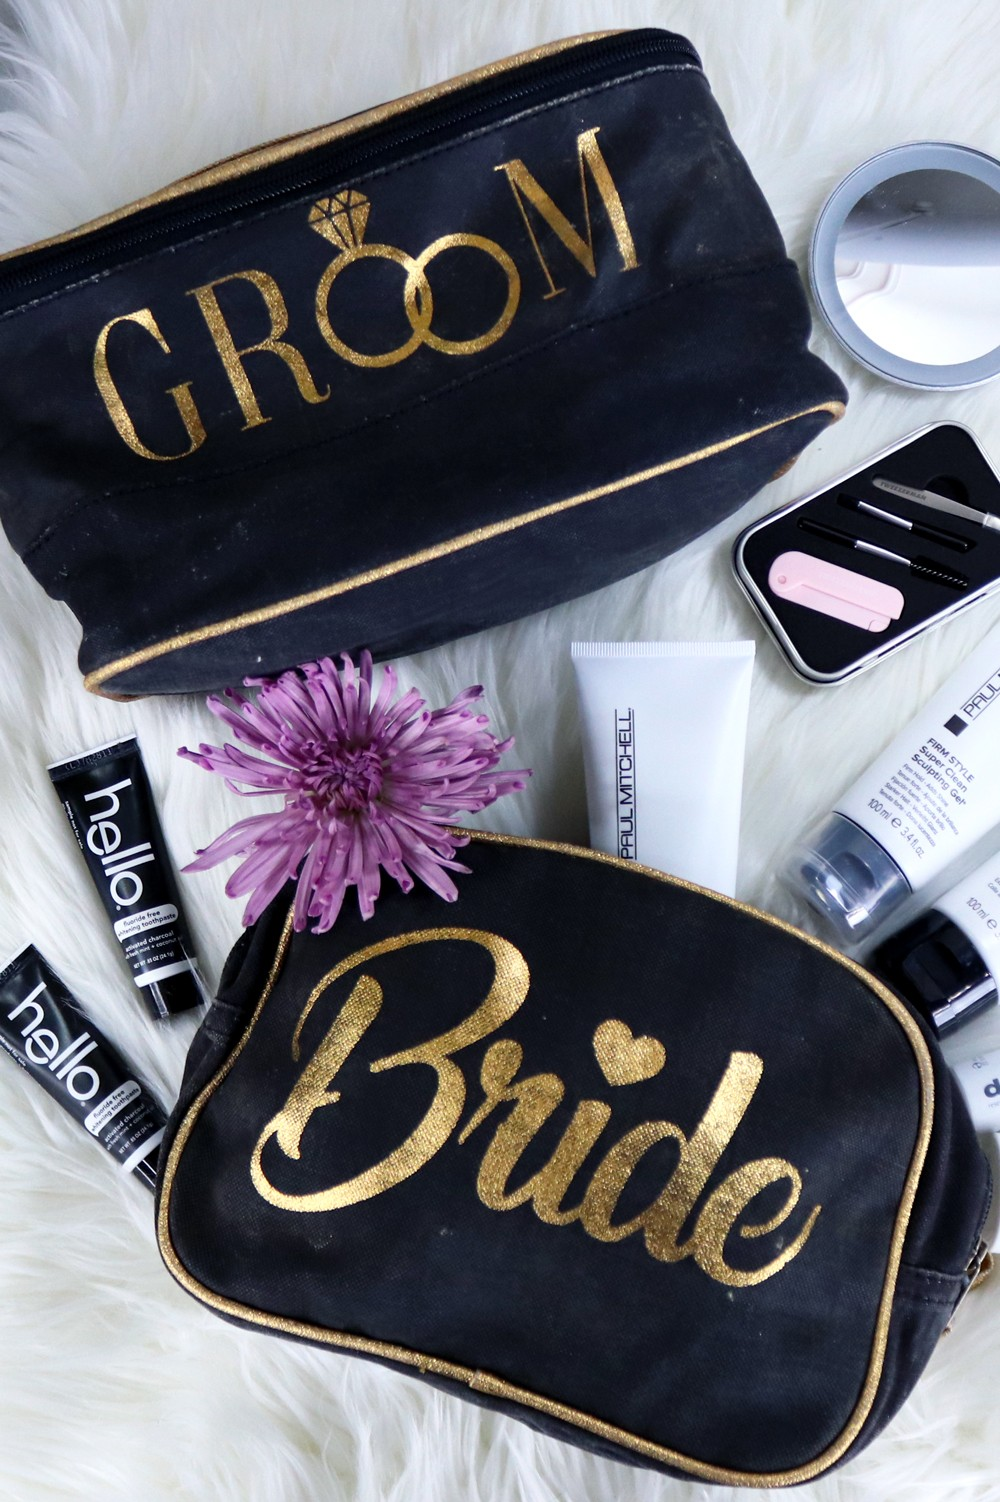 Bride and Groom Makeup Cosmetic Toiletry Bags